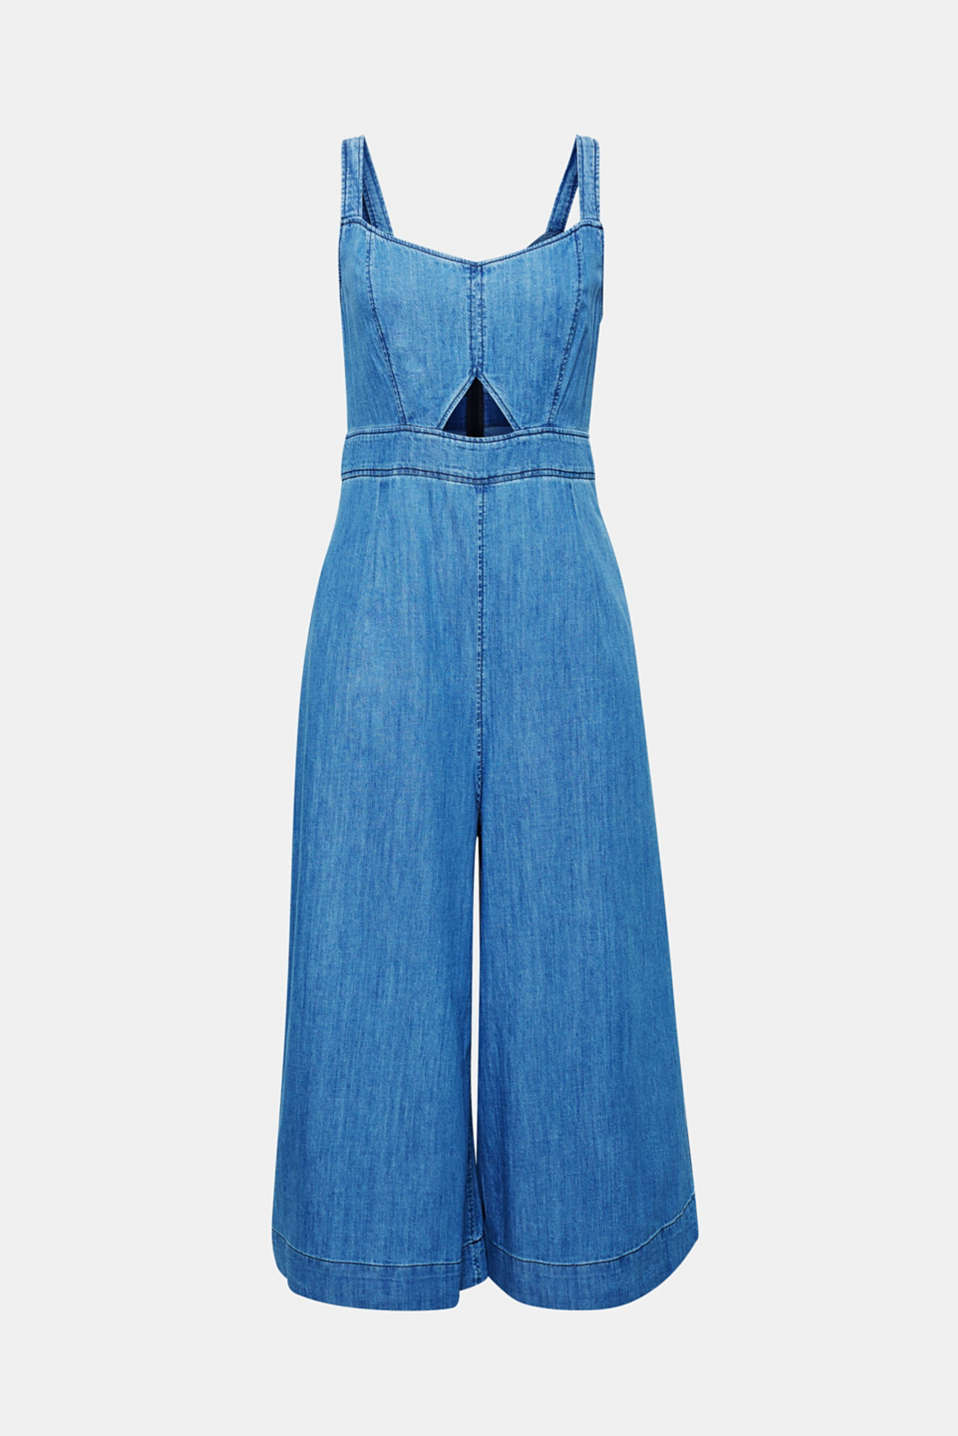 A new denim favourite for your wardrobe, this jumpsuit comes in soft denim made of pure cotton and is defined by the fashionably wide, figure-skimming leg in a 7/8 length.